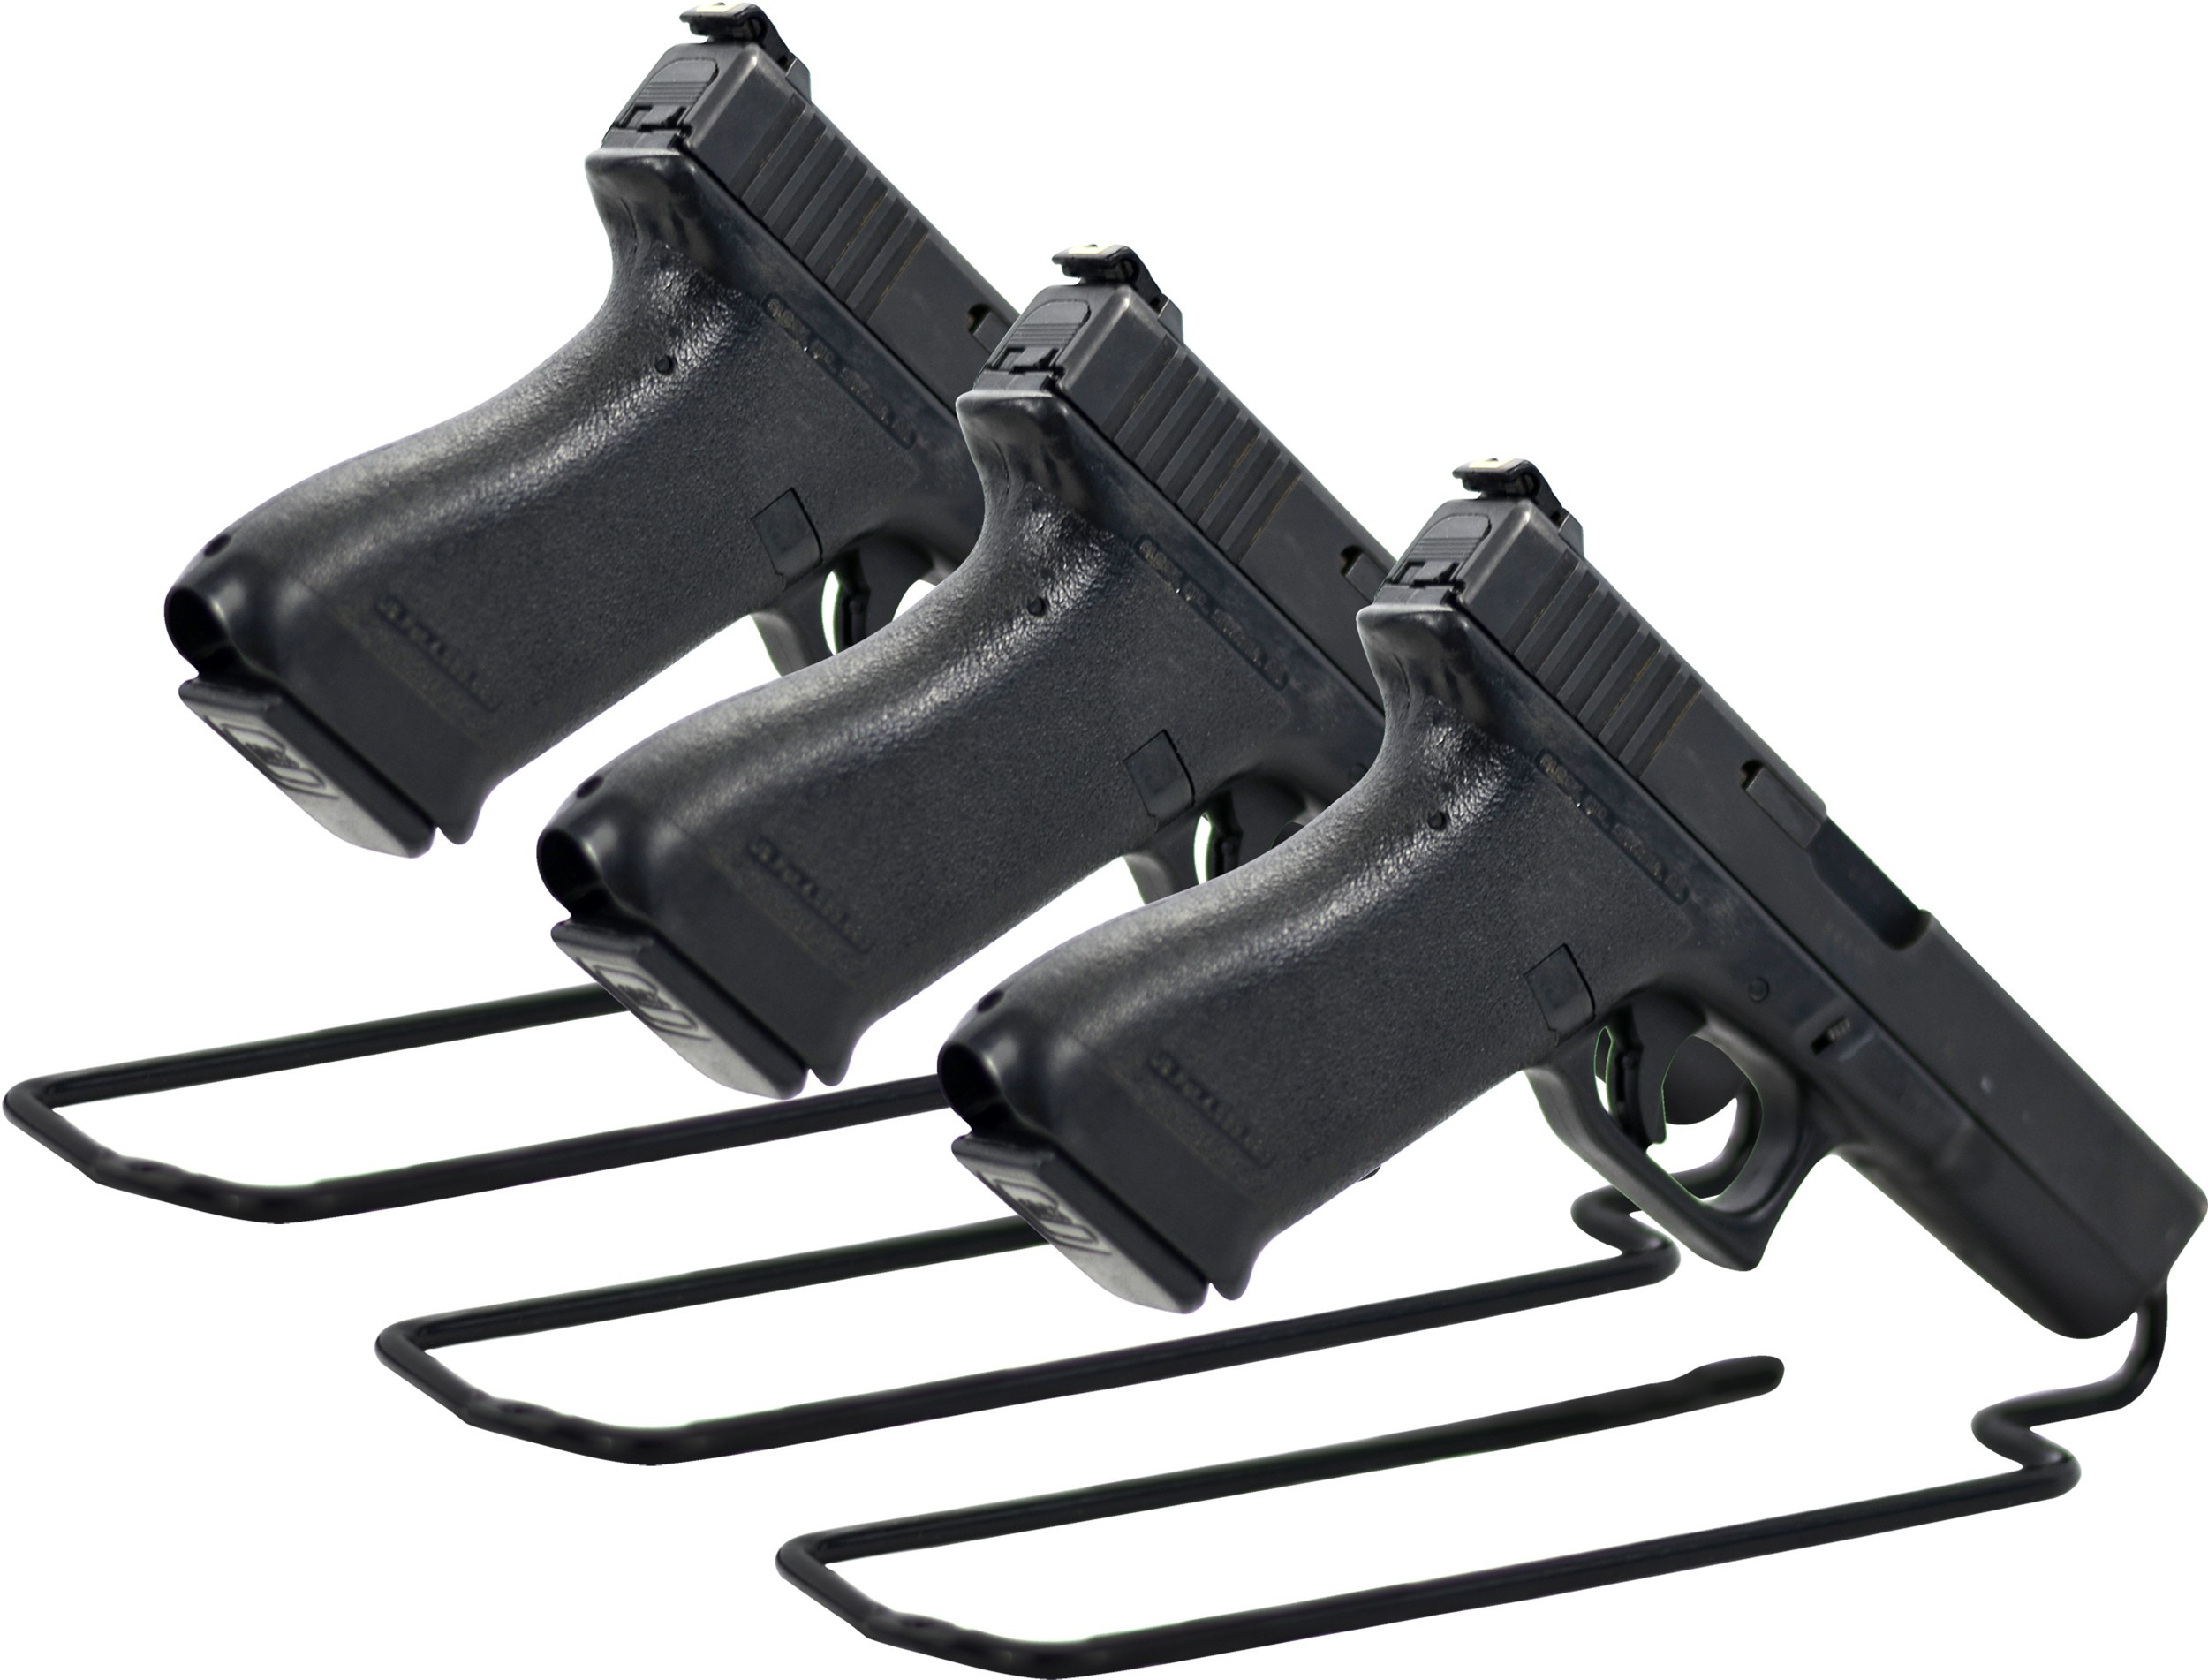 Handgun Stand Rack Single Gun Model Pack of 3